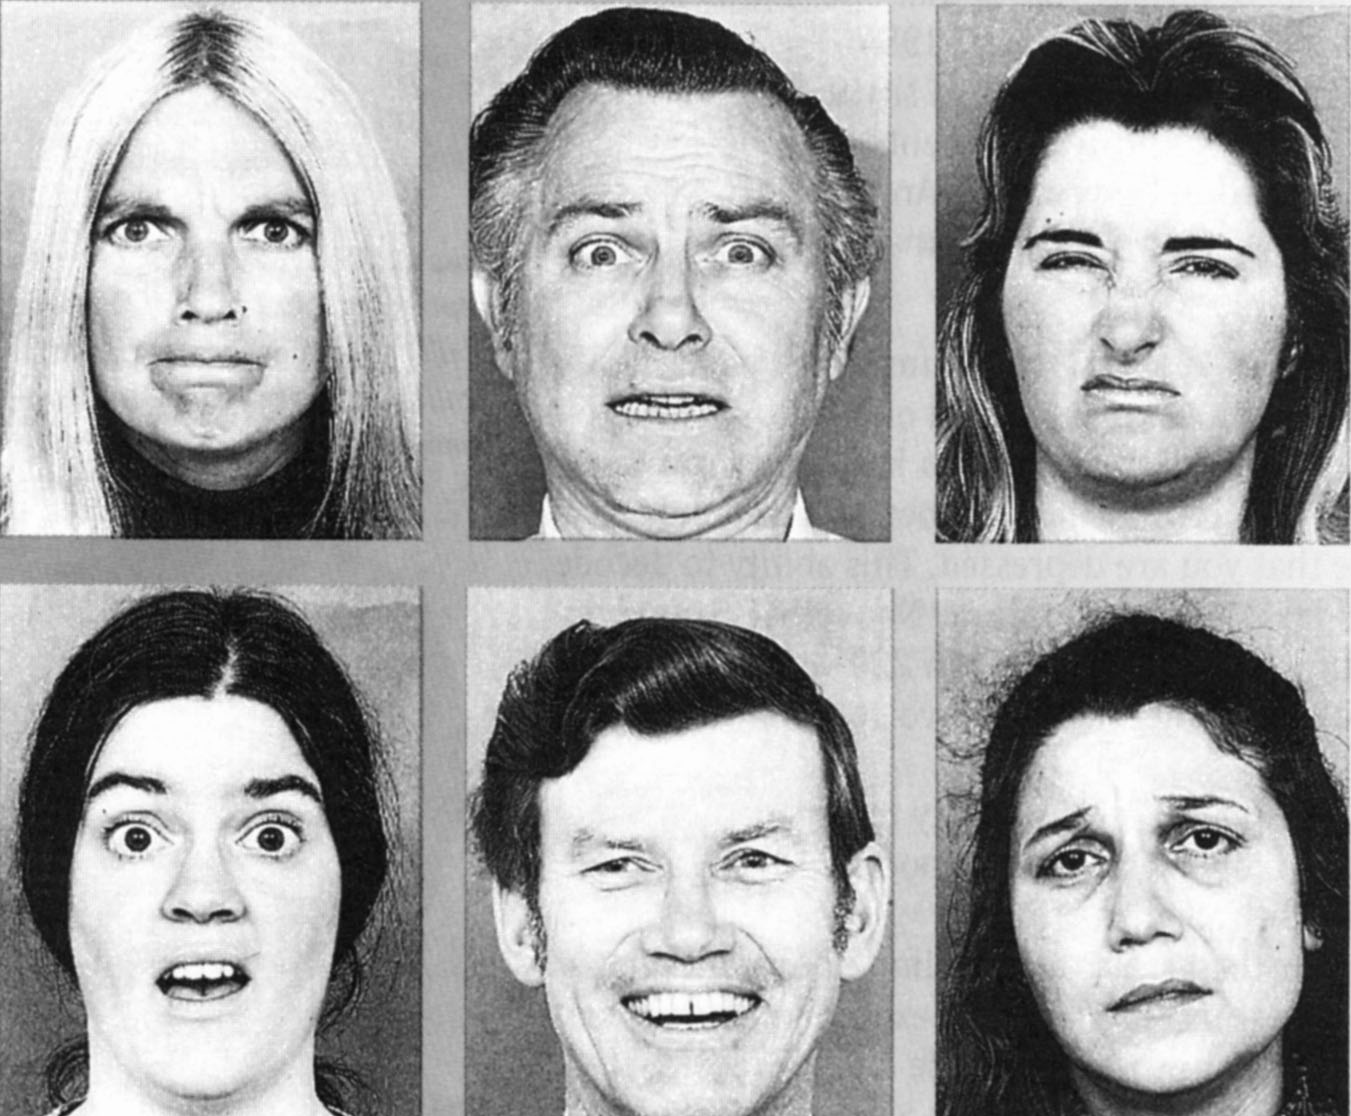 paul ekman s experiment on facial expressionsns Read about lisa barrett's new research on the science of emotion, which debunks paul ekman's theory that directly relates facial expressions to emotions.